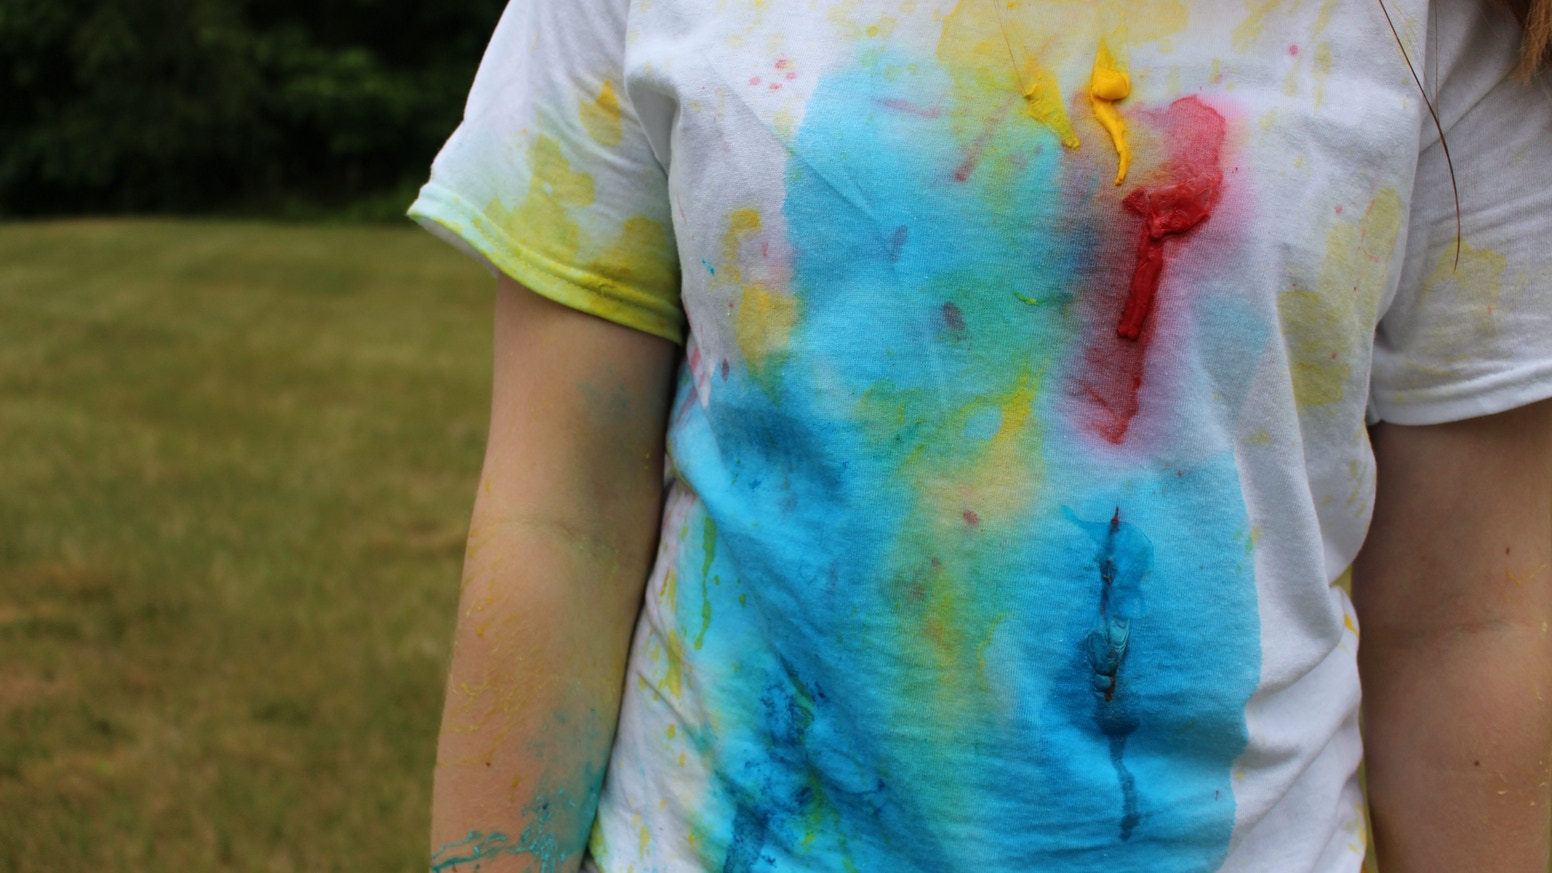 Paintballs that you throw like water balloons